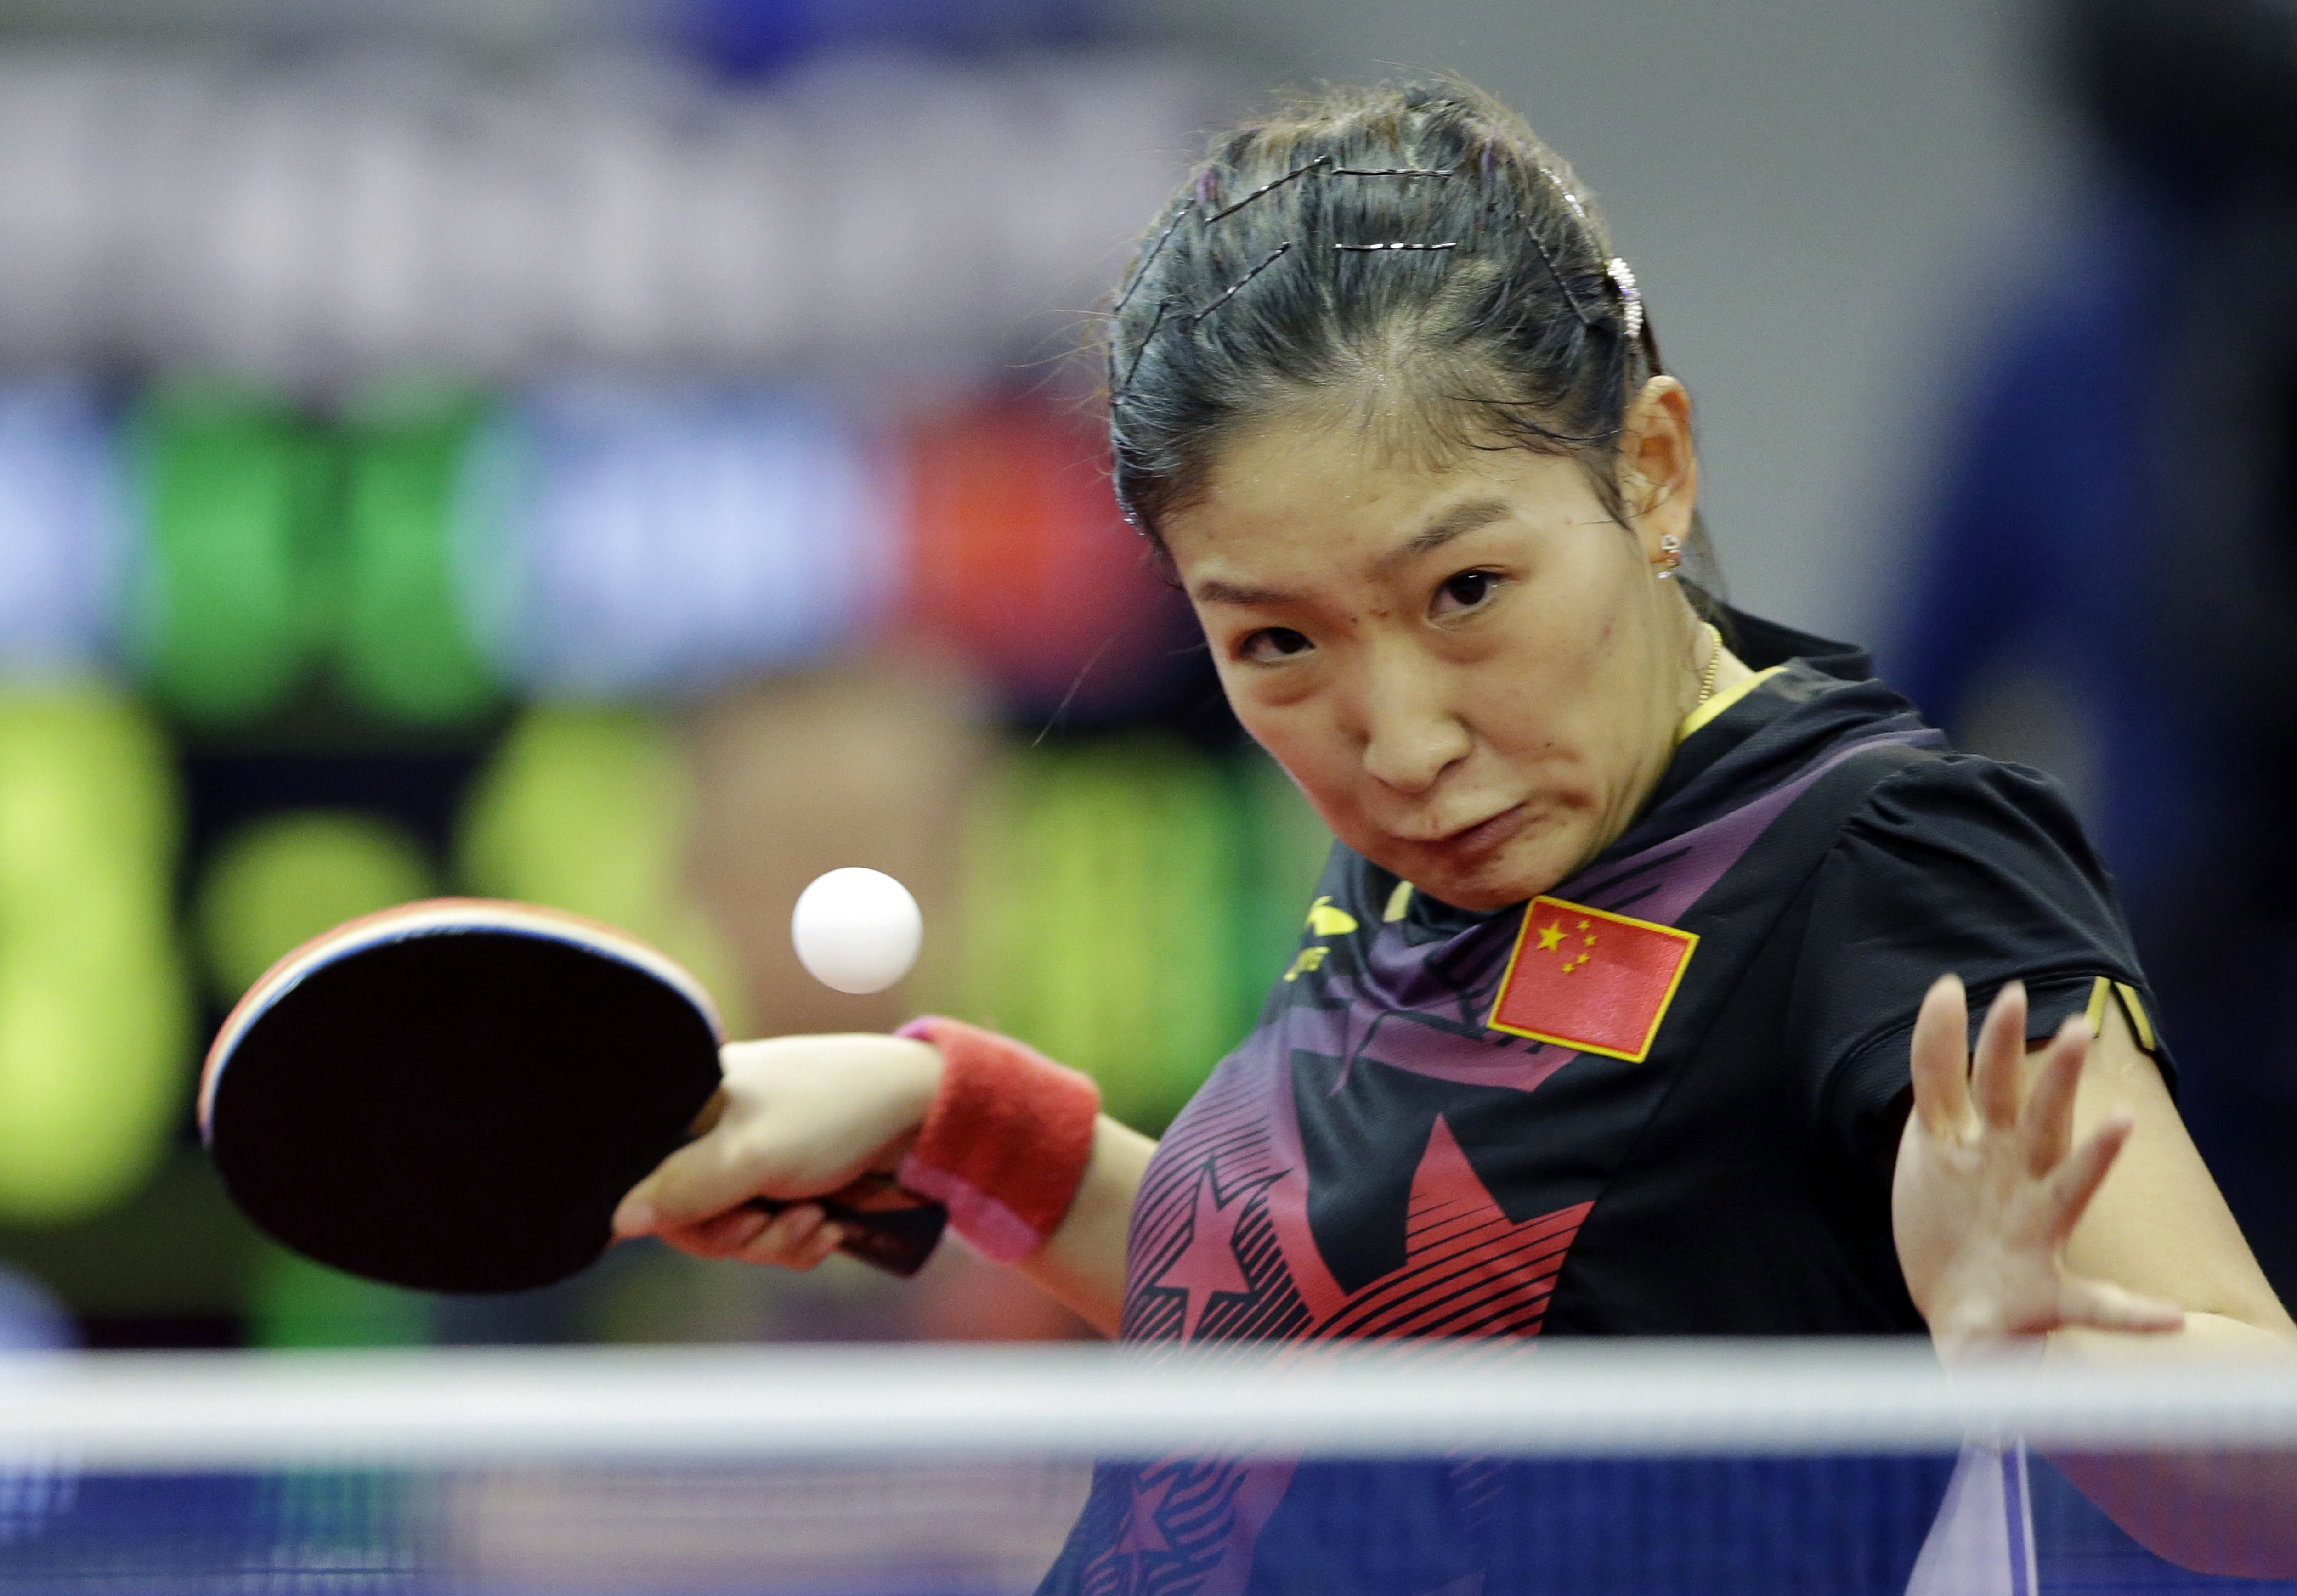 FILE - In this Oct. 2, 2014, file photo, China's Liu Shiwen returns a ball against North Korea's Ri Mi Gyong during the women's single table tennis match at the 17th Incheon Asian Games in Suwon, South Korea. Chinas overwhelming domination of table tennis